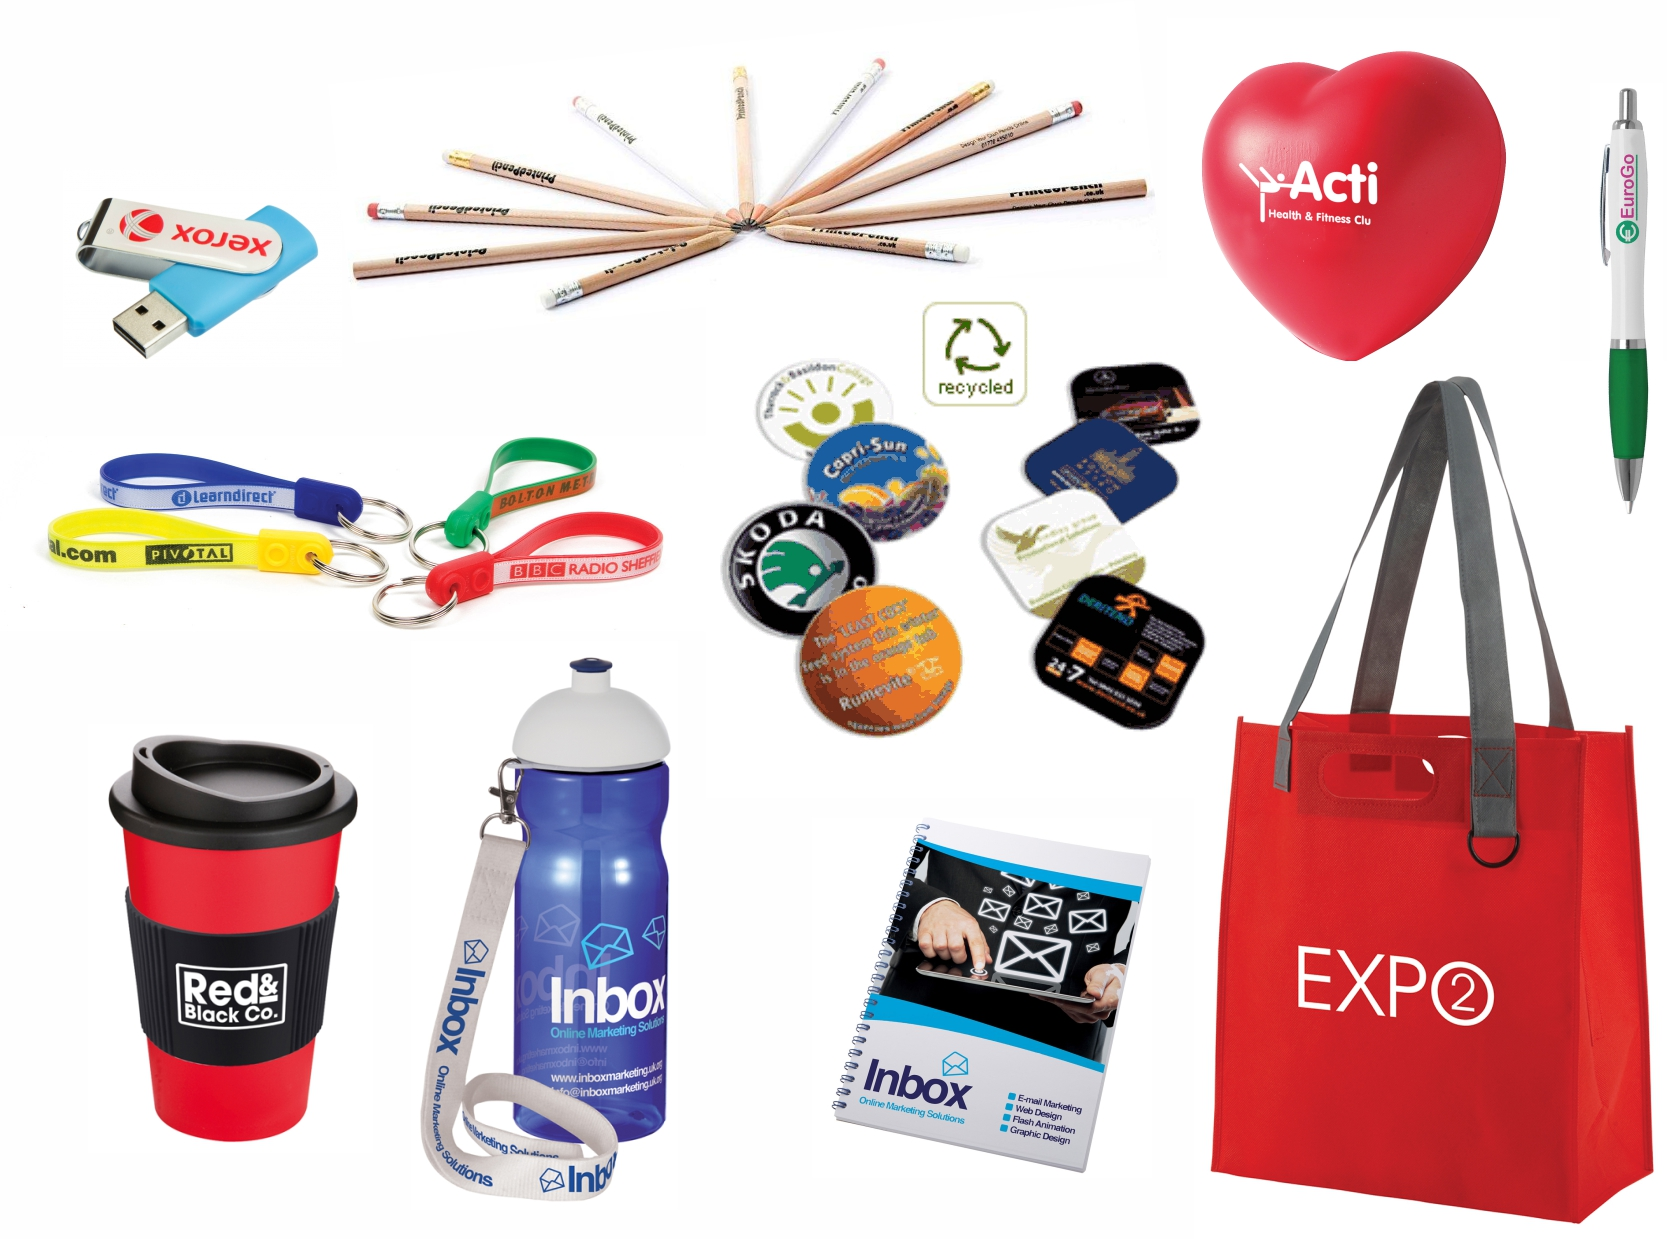 Branded Promotional Gift Ideas for Exhibitions and Events